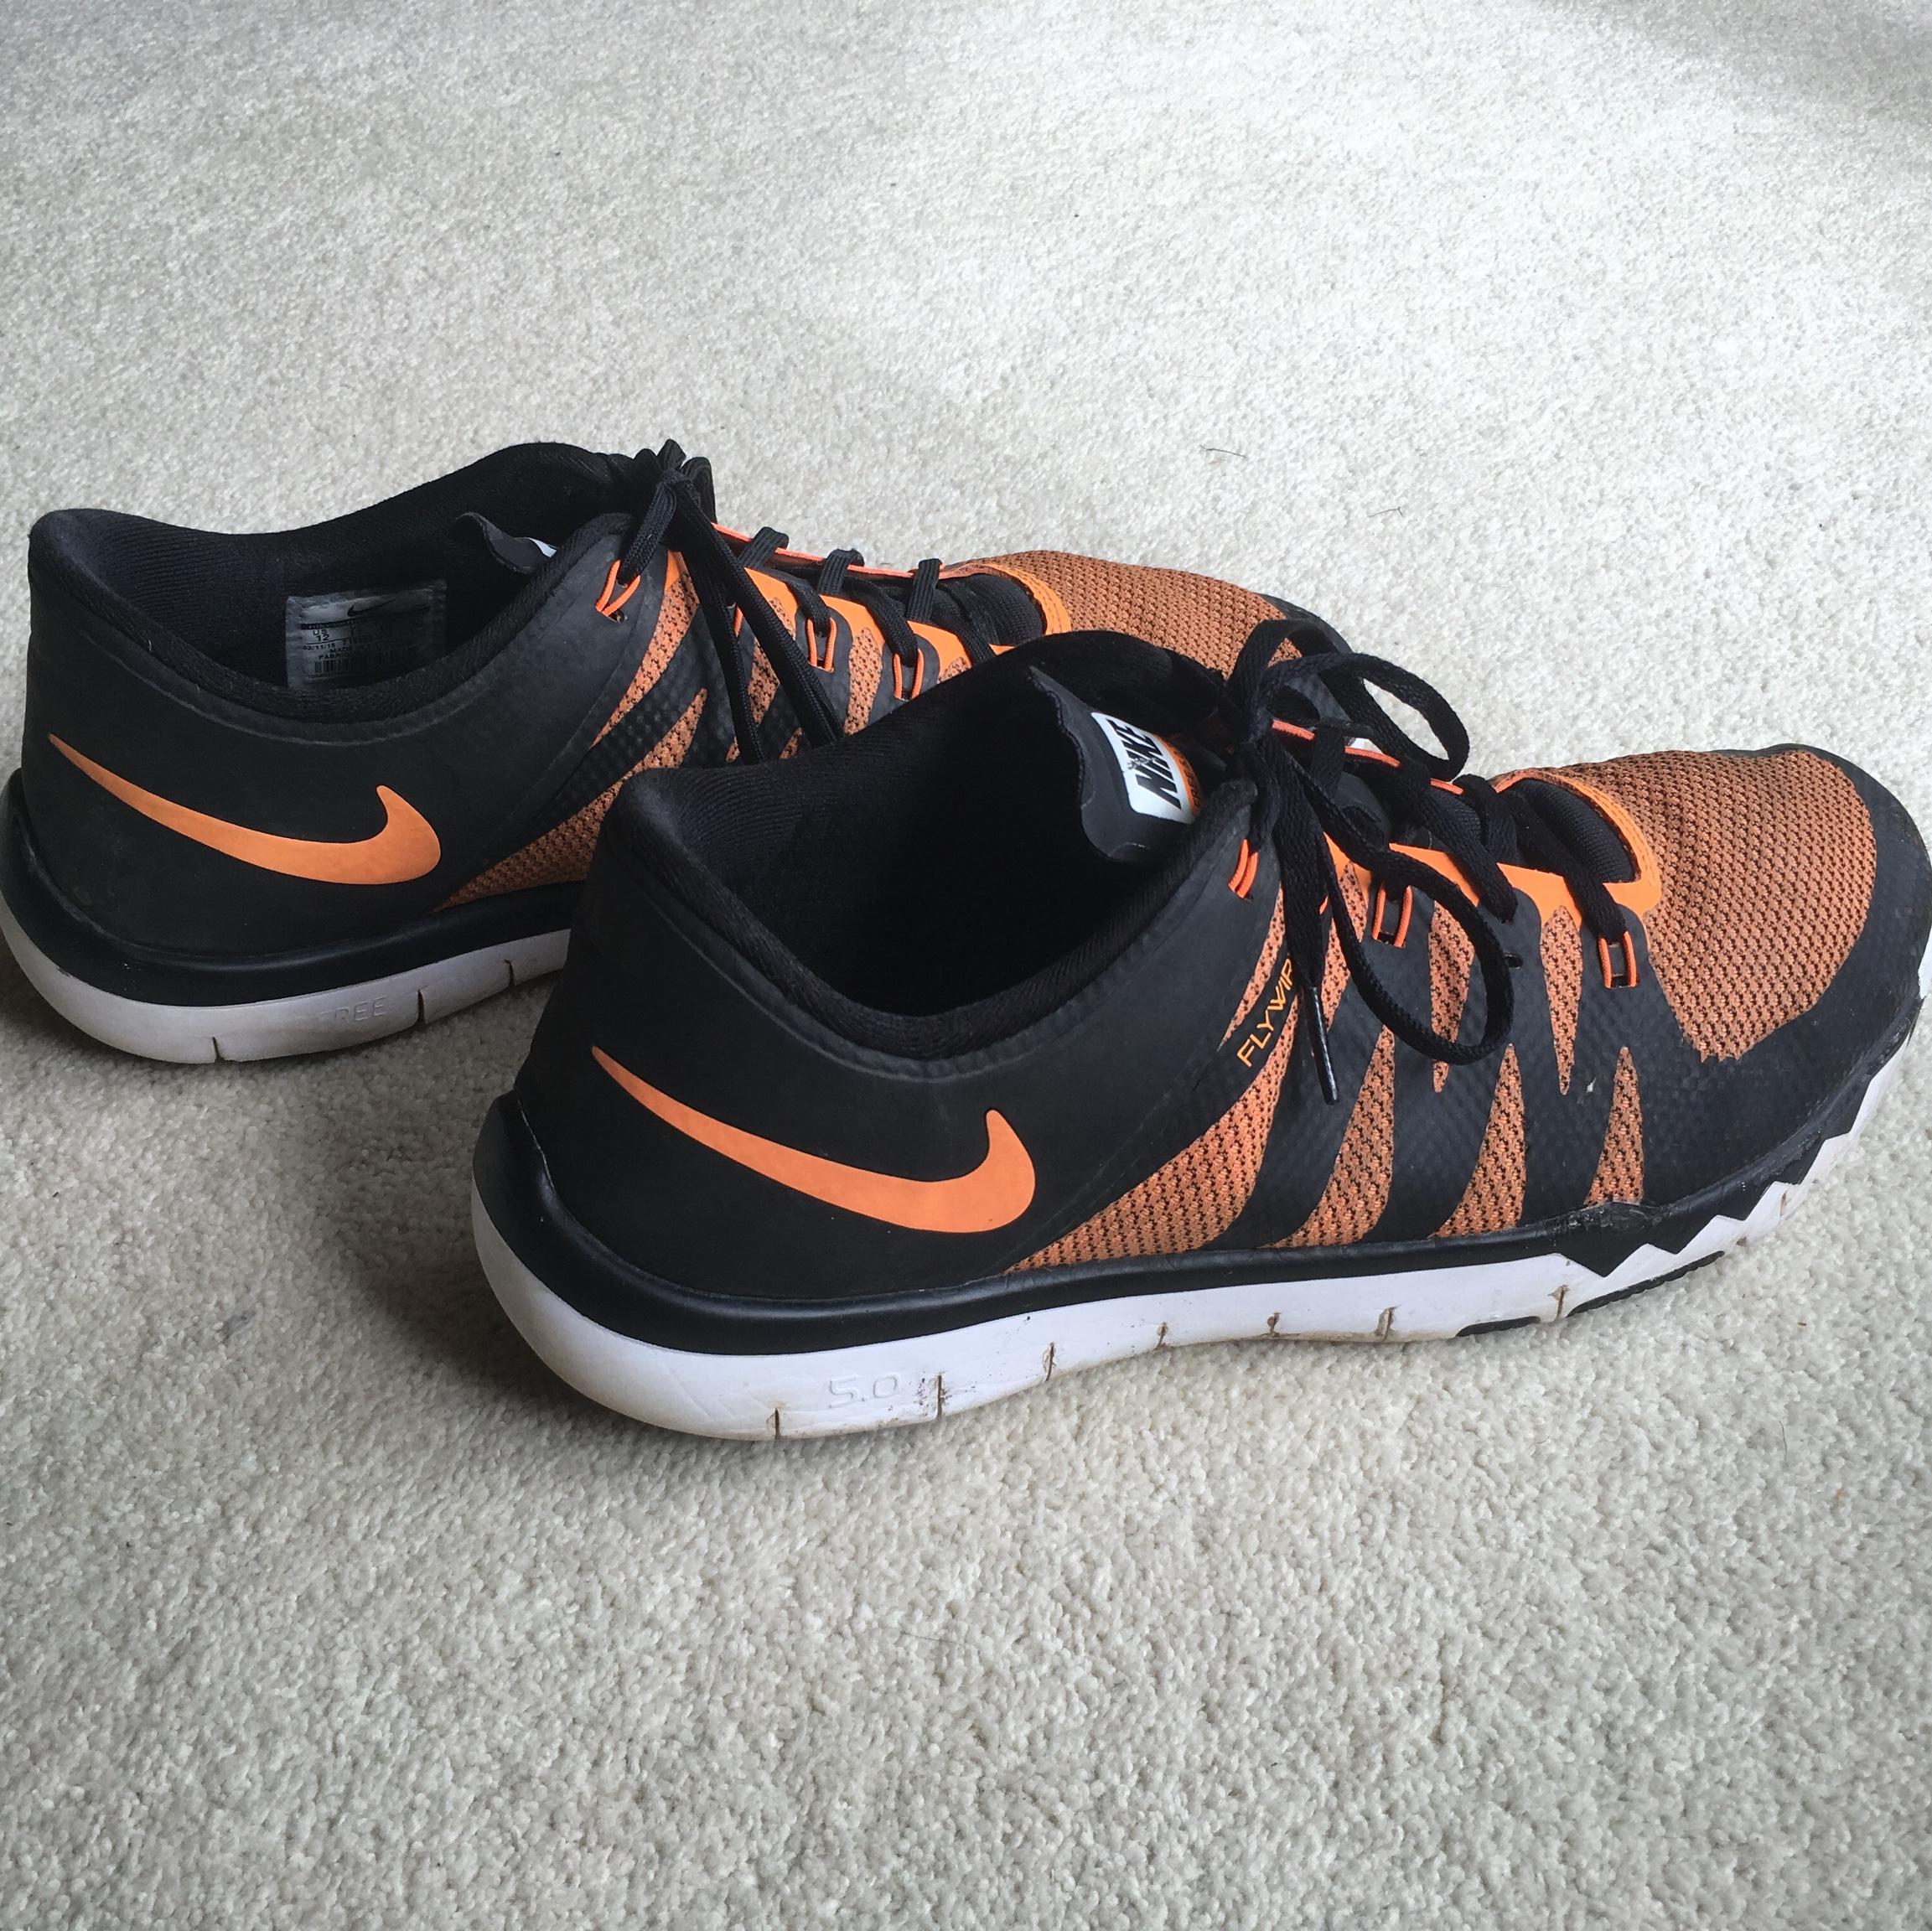 uk availability 04bb1 610e2 Nike Free 5.0 Flywire good condition. - Depop